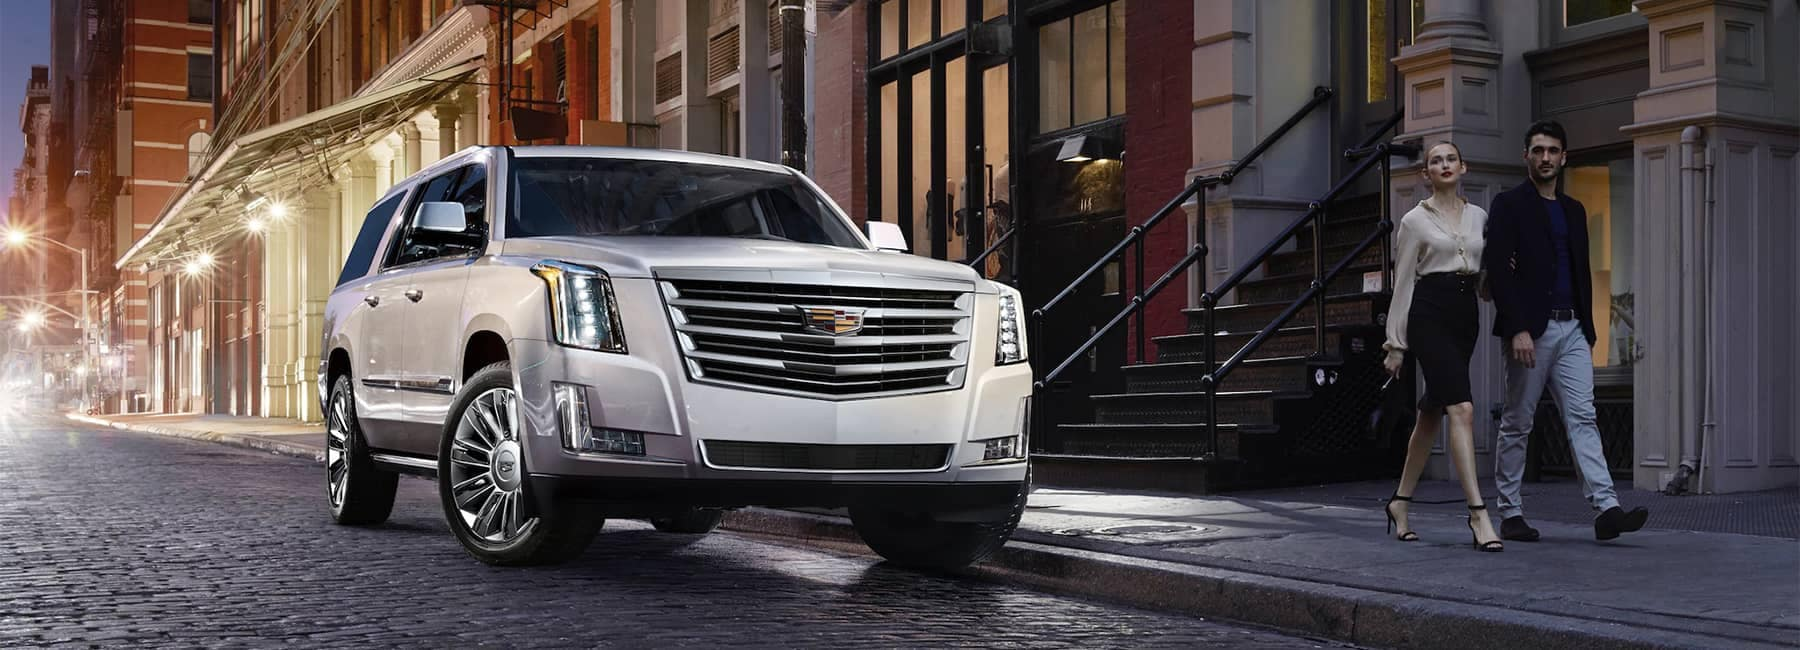 2020 Cadillac Escalade Full-Size SUV Front Exterior Parked